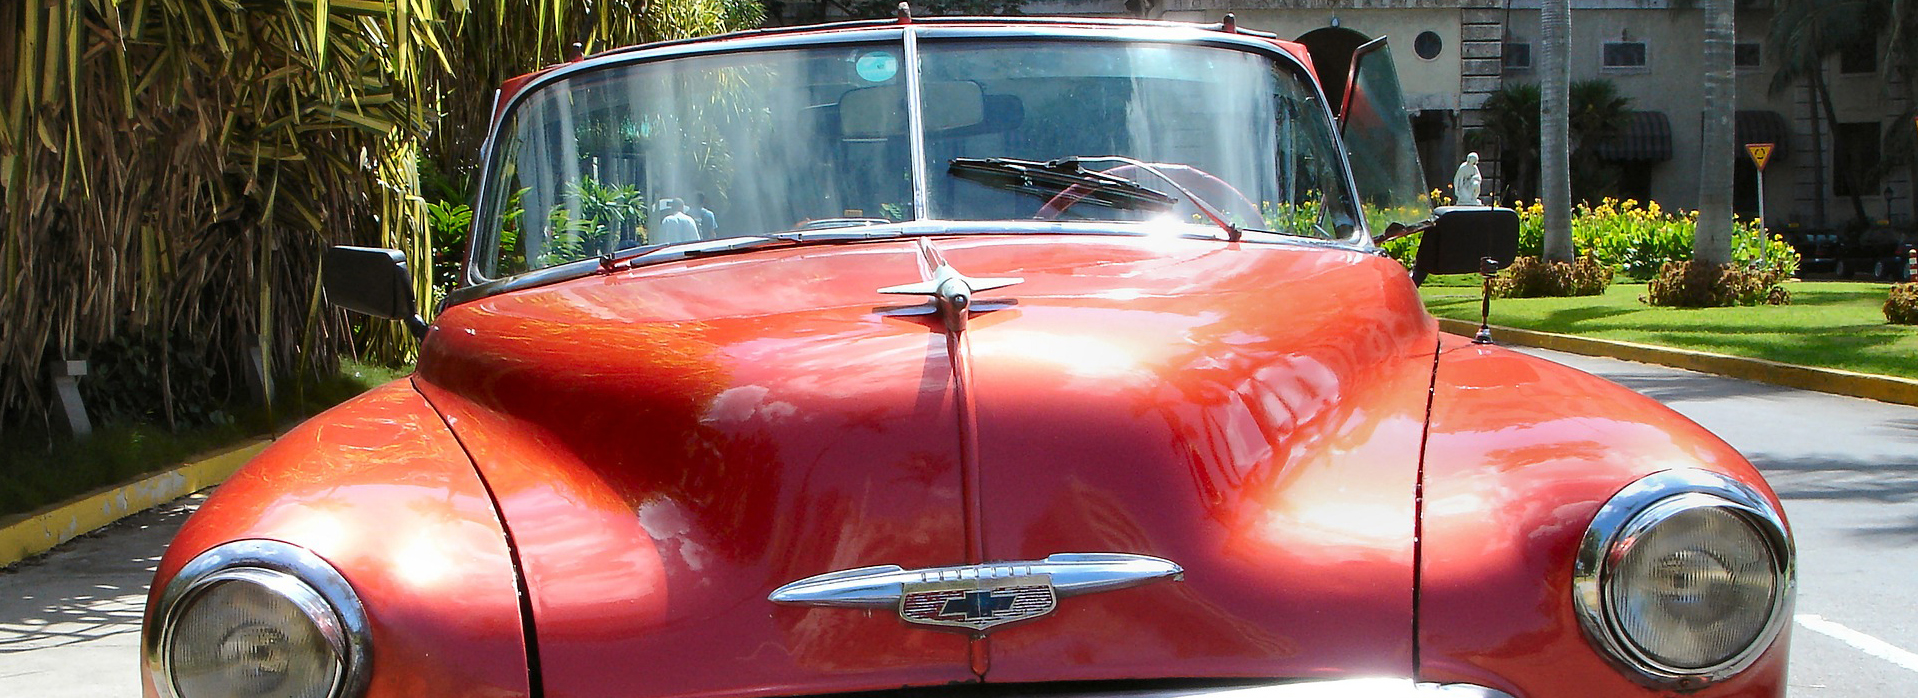 Red Oldtimer Car in Bonita Springs - CarDonations4Cancer.org